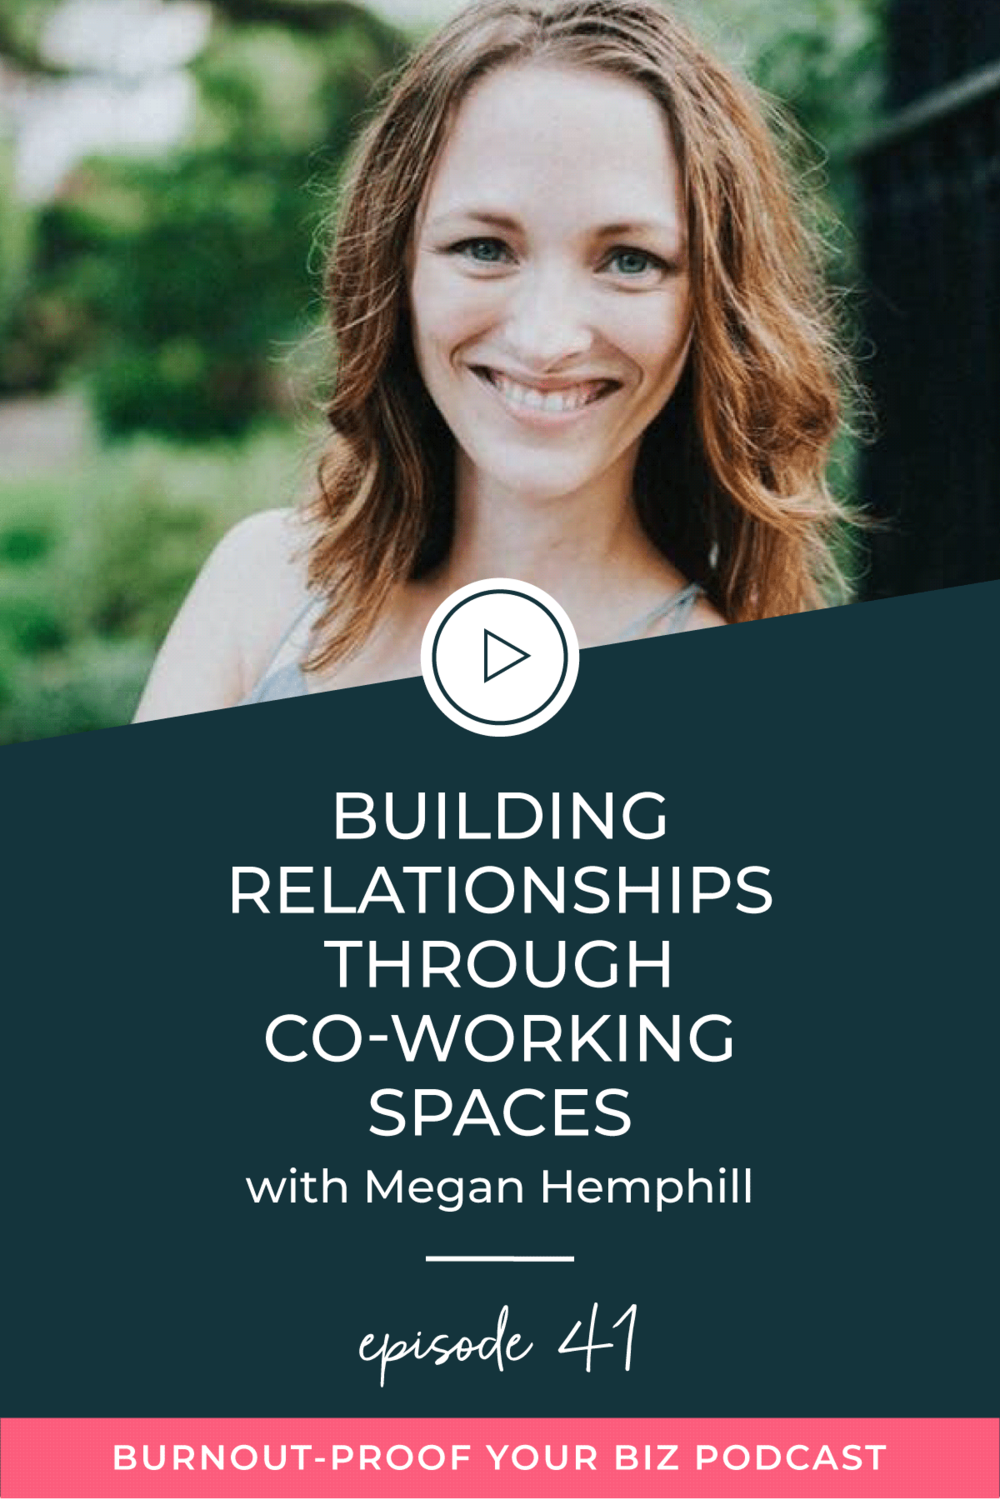 Burnout-Proof Your Biz Podcast with Chelsea B Foster | Episode 041 - Building Relationships through Co-Working Spaces with Megan Hemphill of Firebrand Collective | Learn how to run your biz and live your dream life on your own terms without the fear of burnout. ||| Co-working for creatives | Working from Home | Networking for creatives | Co-working spaces | Avoiding Boundaries | Boundaries for creative business owners | Productive Entrepreneur | Productivity | Workflows for Social Media |